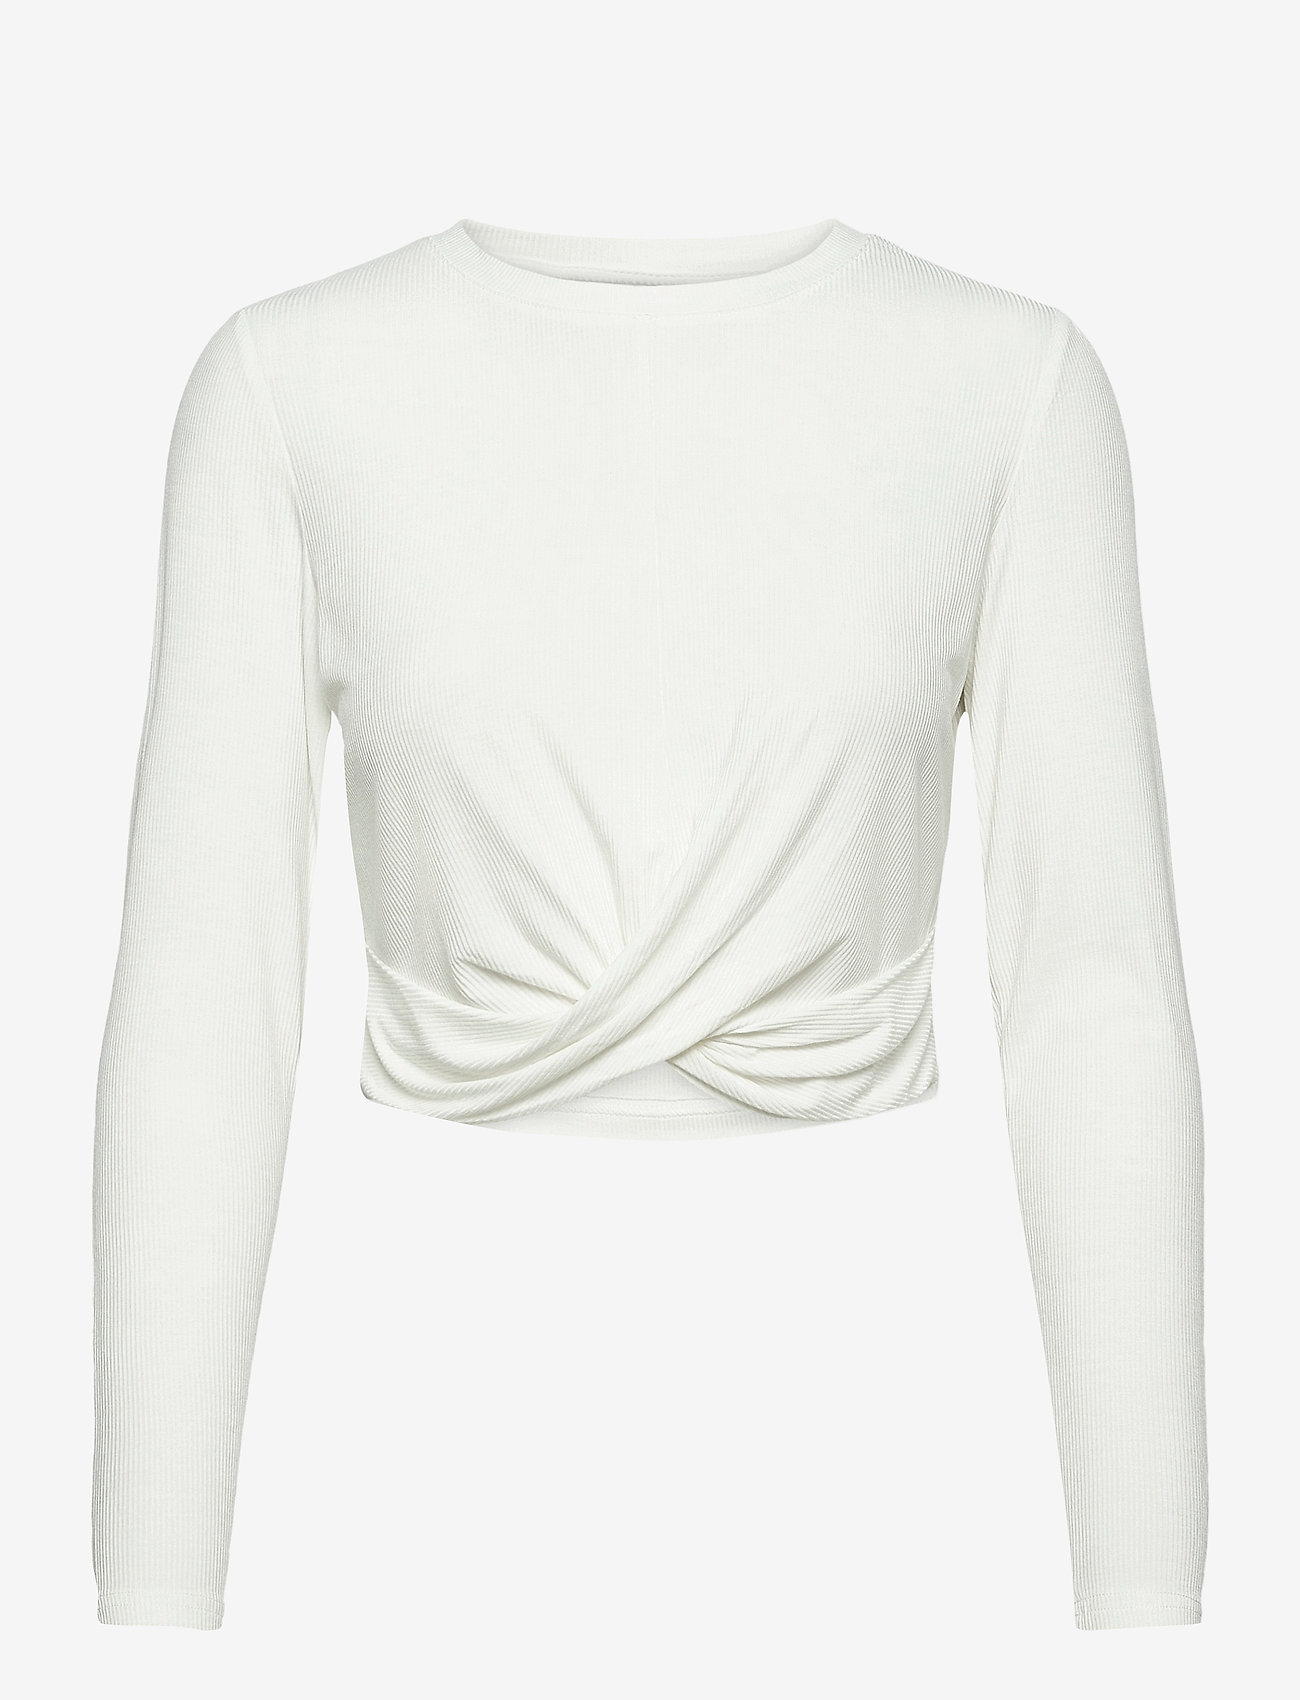 AIM'N - White Rib Knot Top - langærmede toppe - white - 1